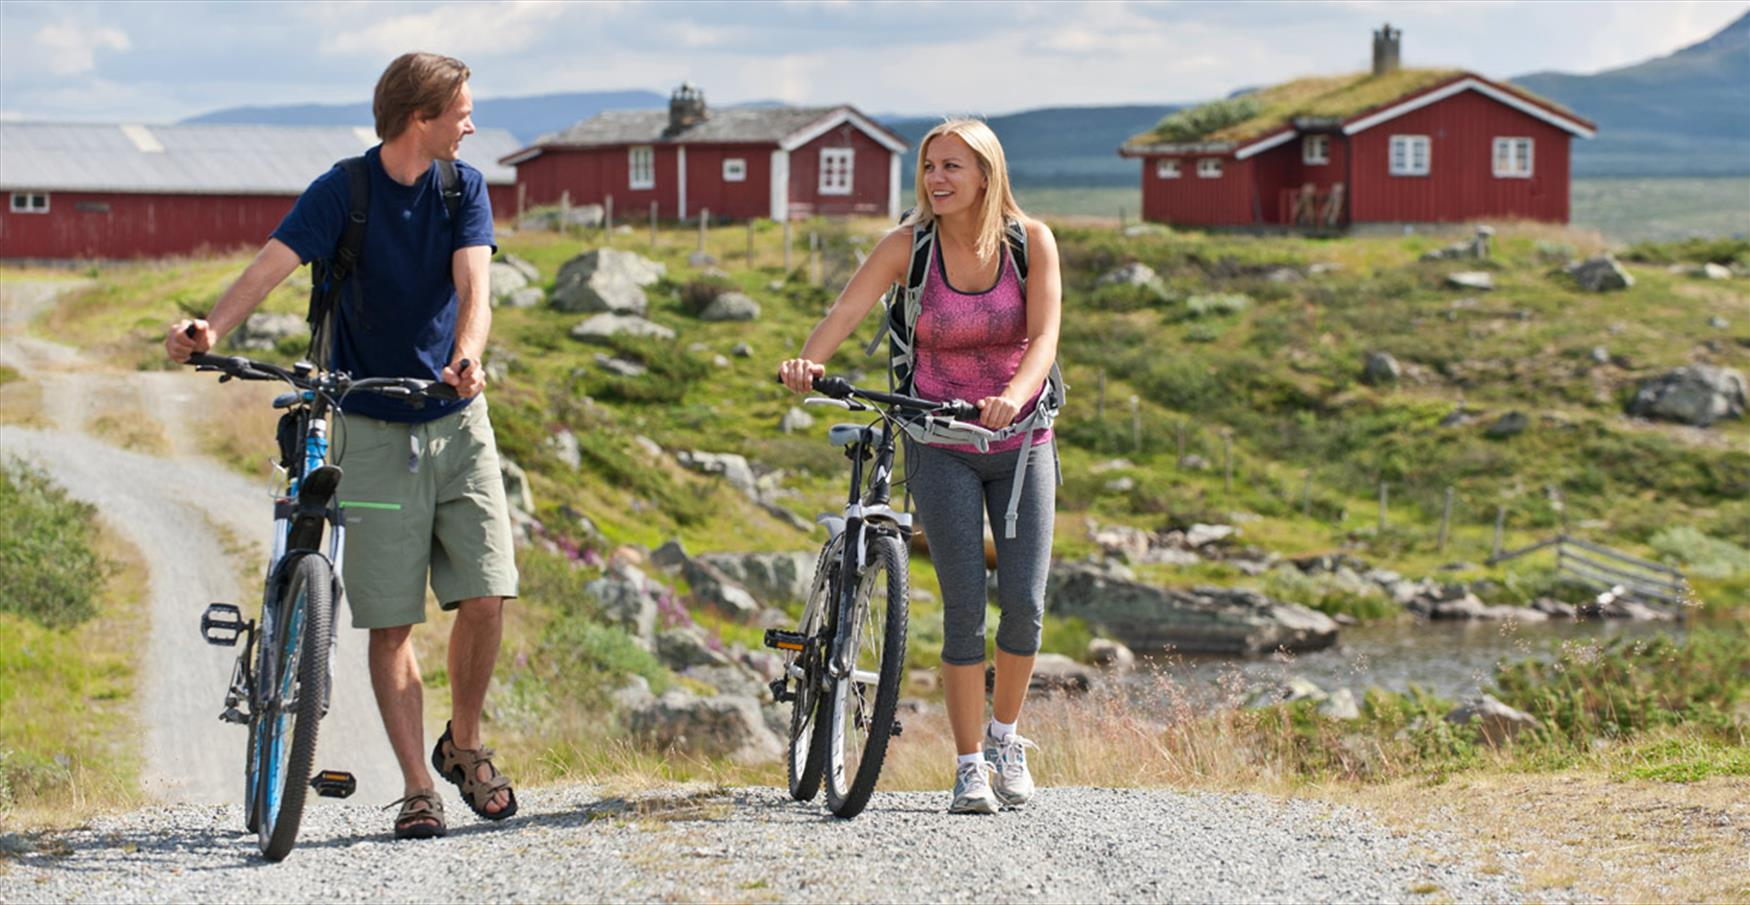 Welcome To Valdres Mass Air Flow Sensor Wiring Diagram 2009 Ford Flex The Cycling Route Mjlkevegen Was Voted One Of Norways Most Beautiful It Mostly Runs Through